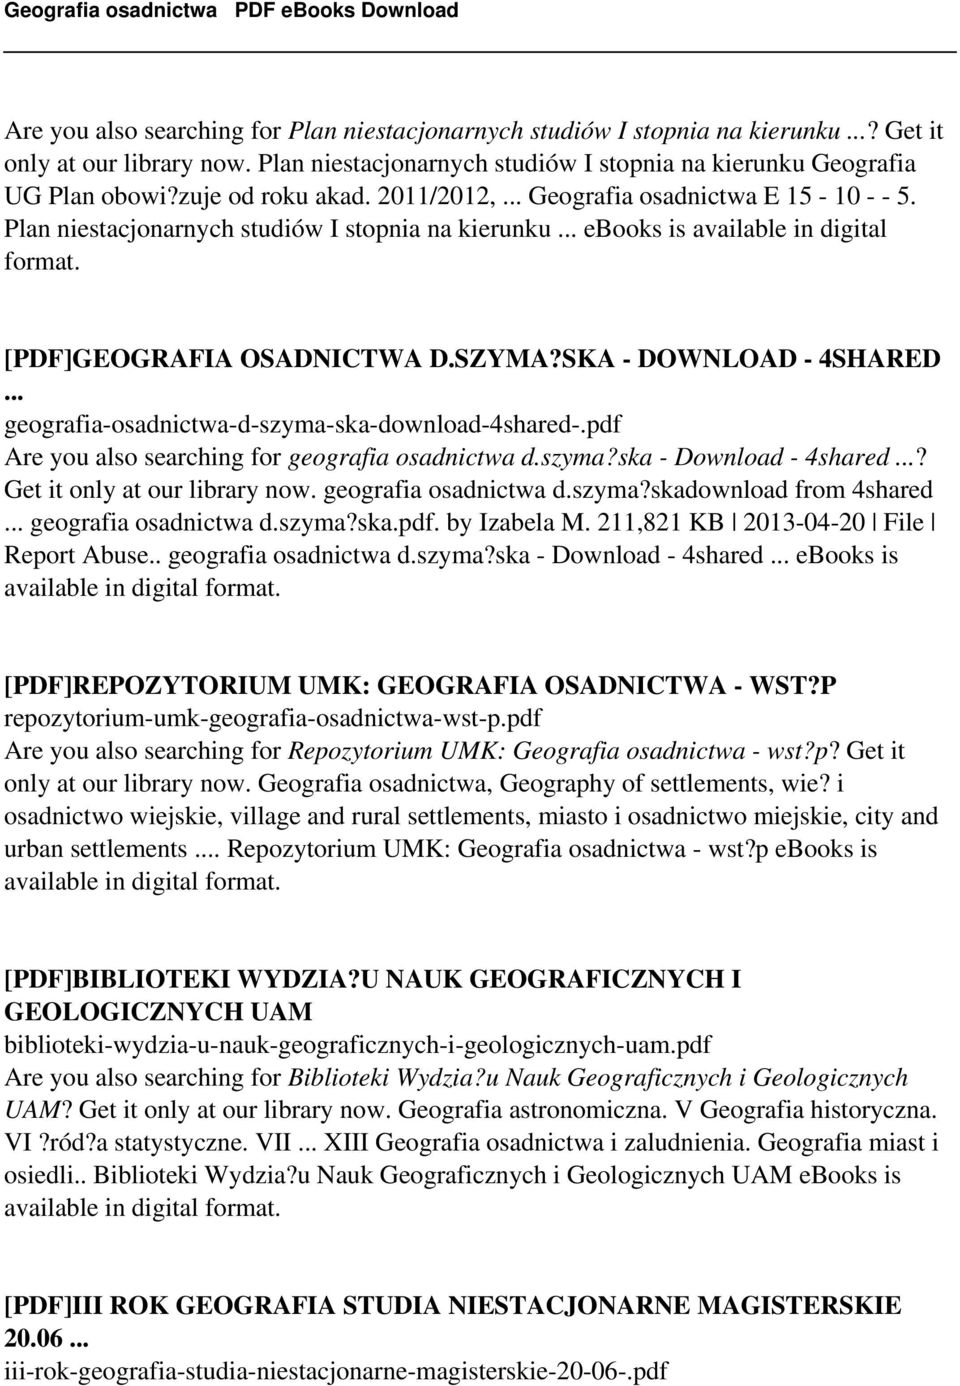 SKA - DOWNLOAD - 4SHARED... geografia-osadnictwa-d-szyma-ska-download-4shared-.pdf Are you also searching for geografia osadnictwa d.szyma?ska - Download - 4shared...? Get it only at our library now.